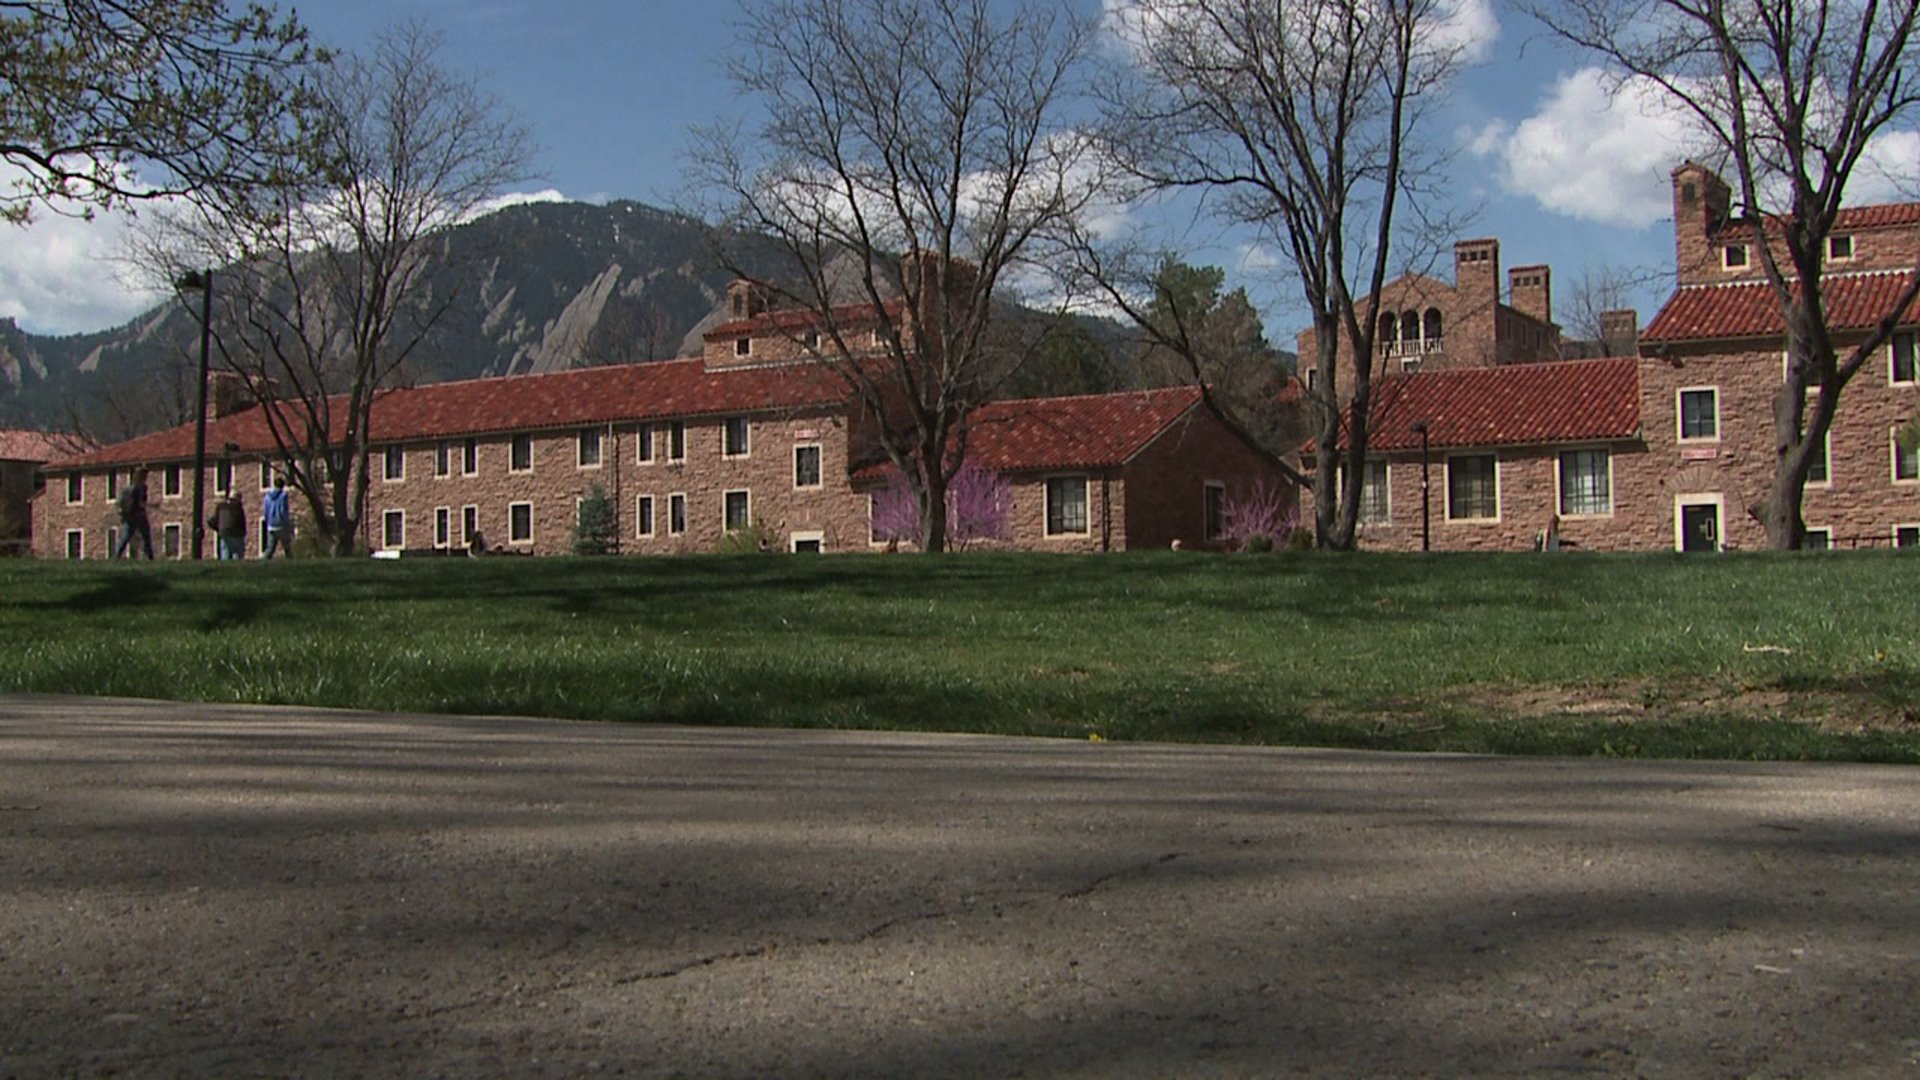 University of Colorado campus in Boulder